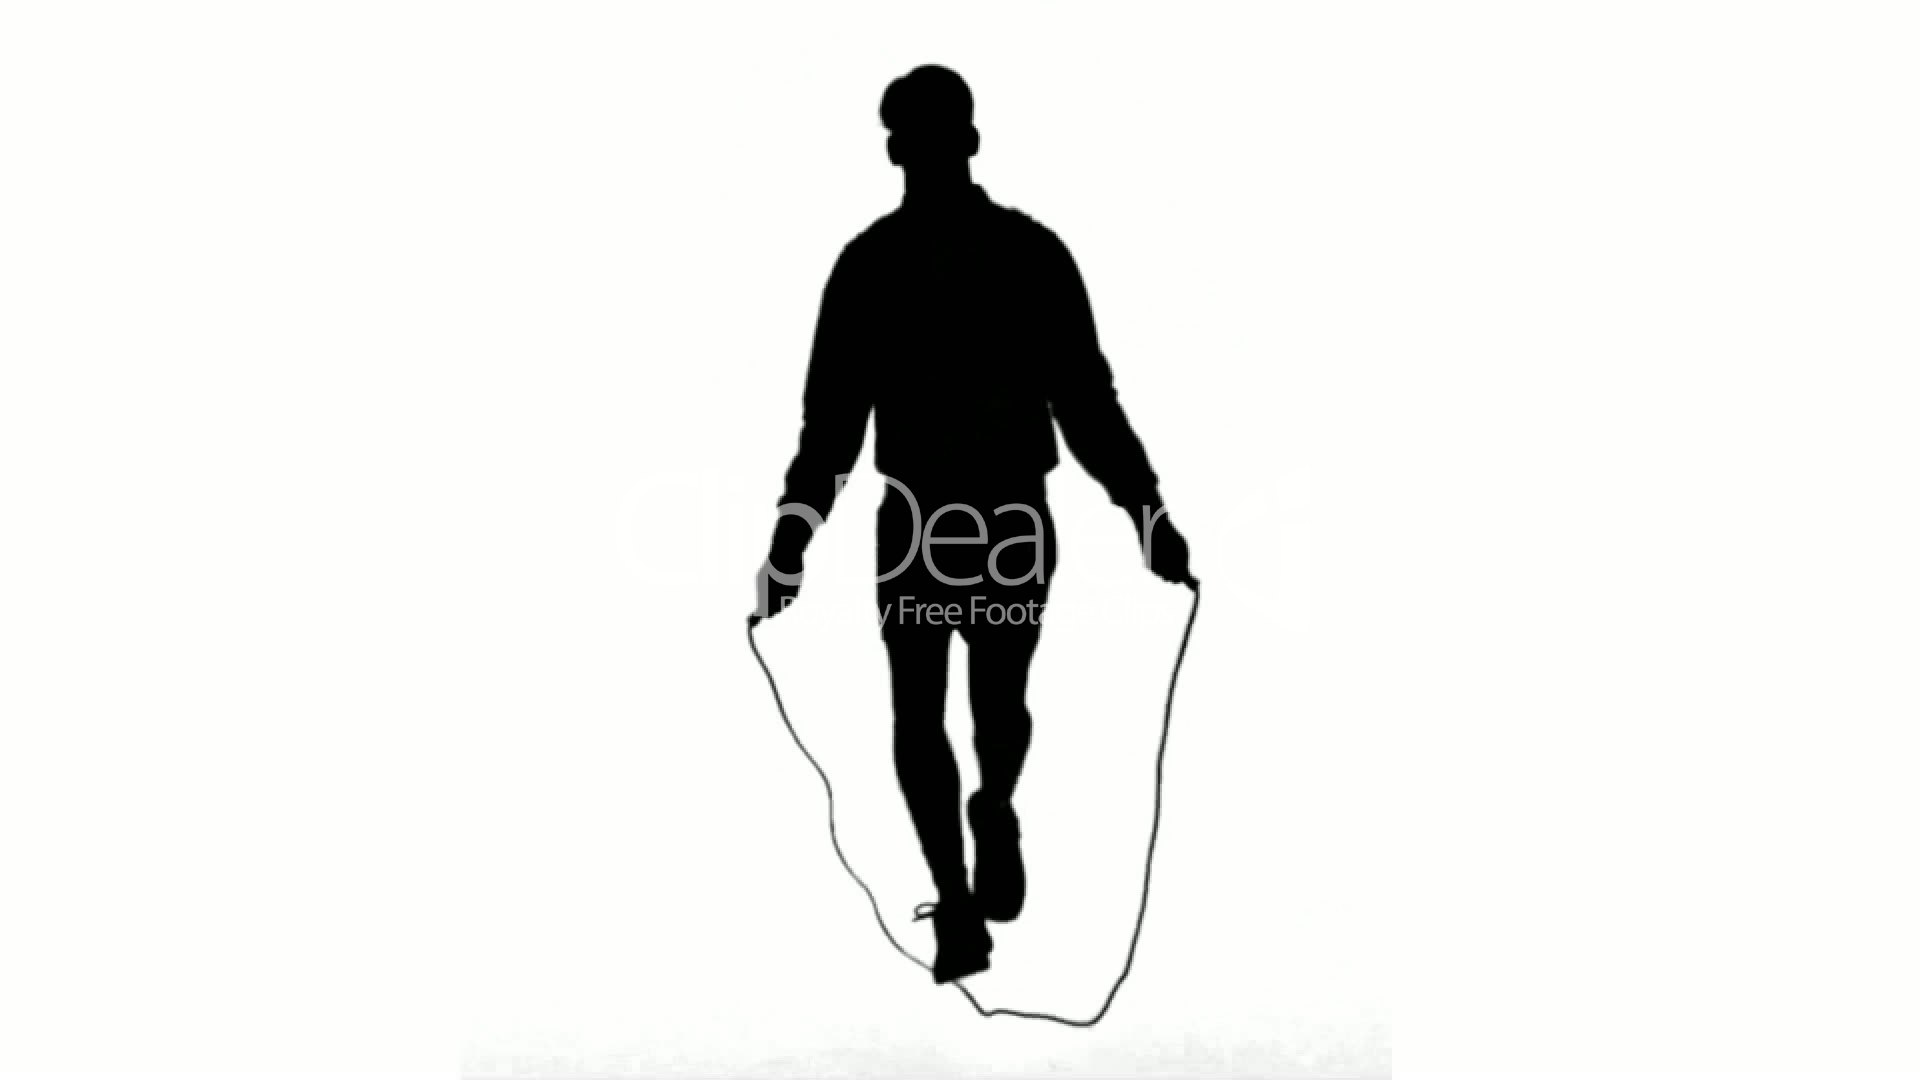 1920x1080 Silhouette Of A Man Working Out With A Rope On White Background